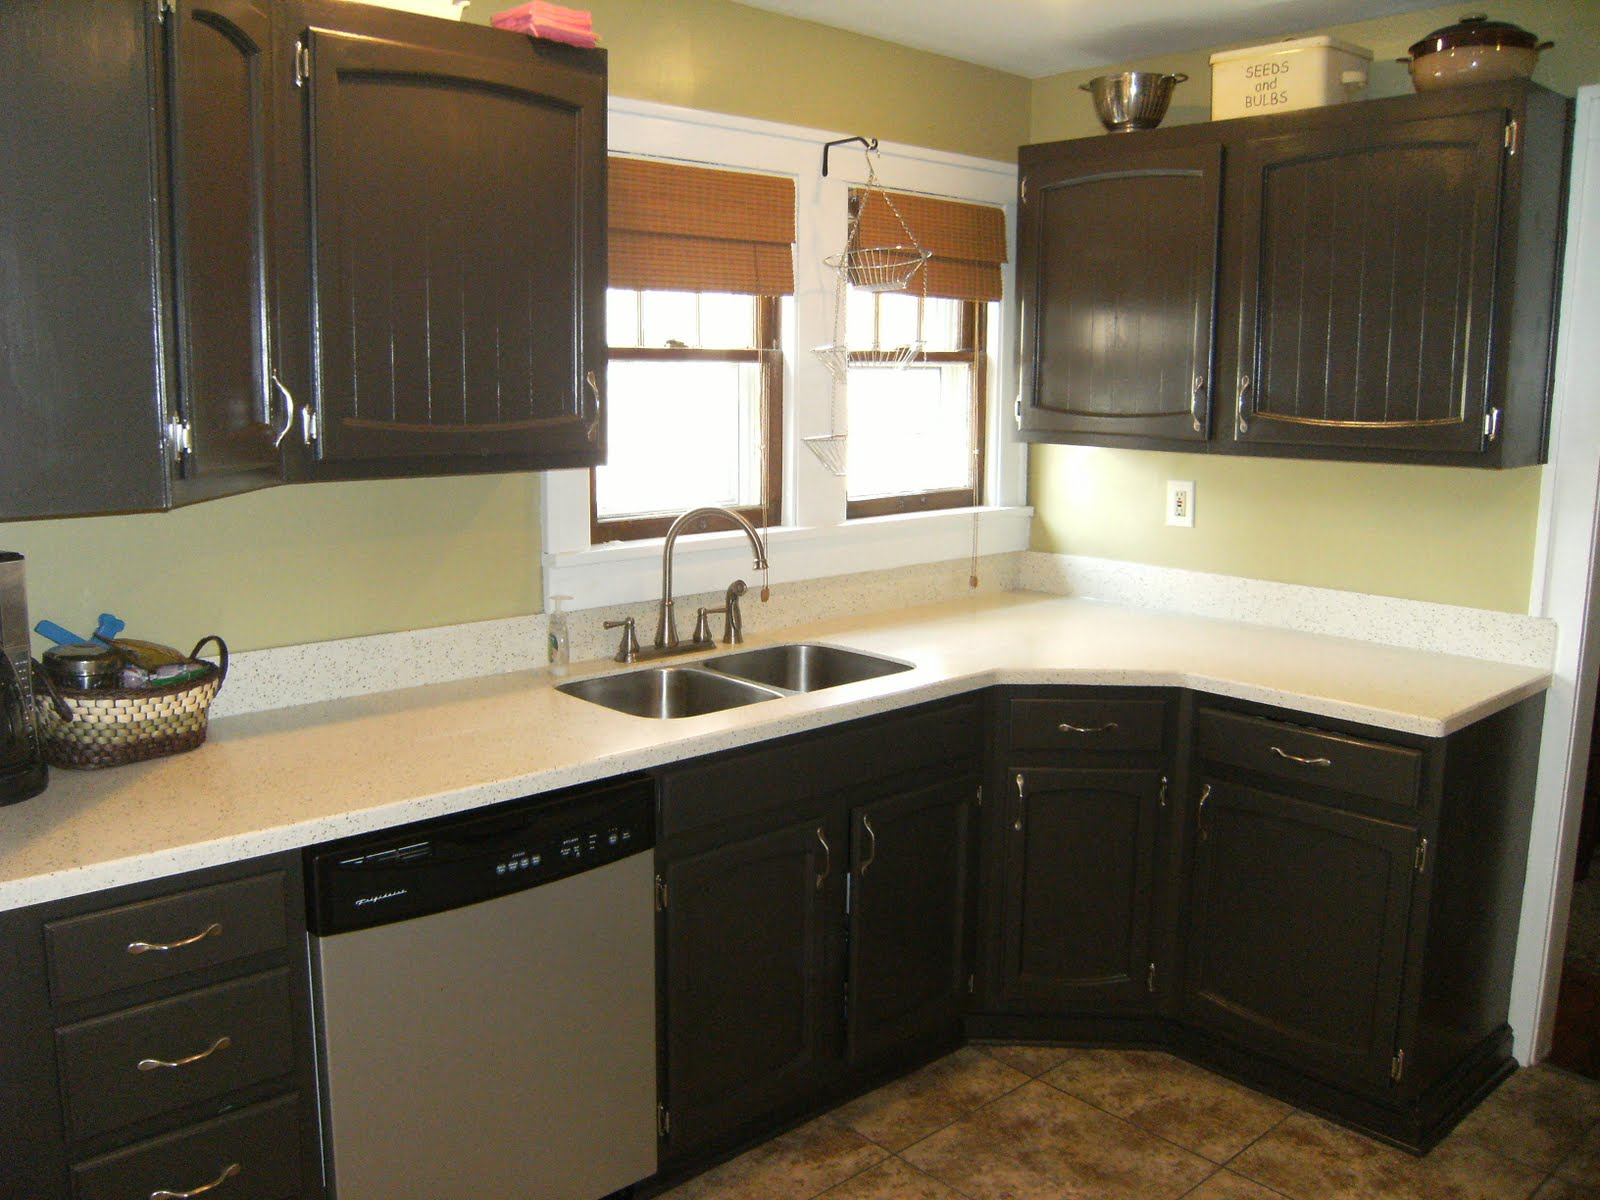 Painted Kitchen Cabinets @ Projects Around the House